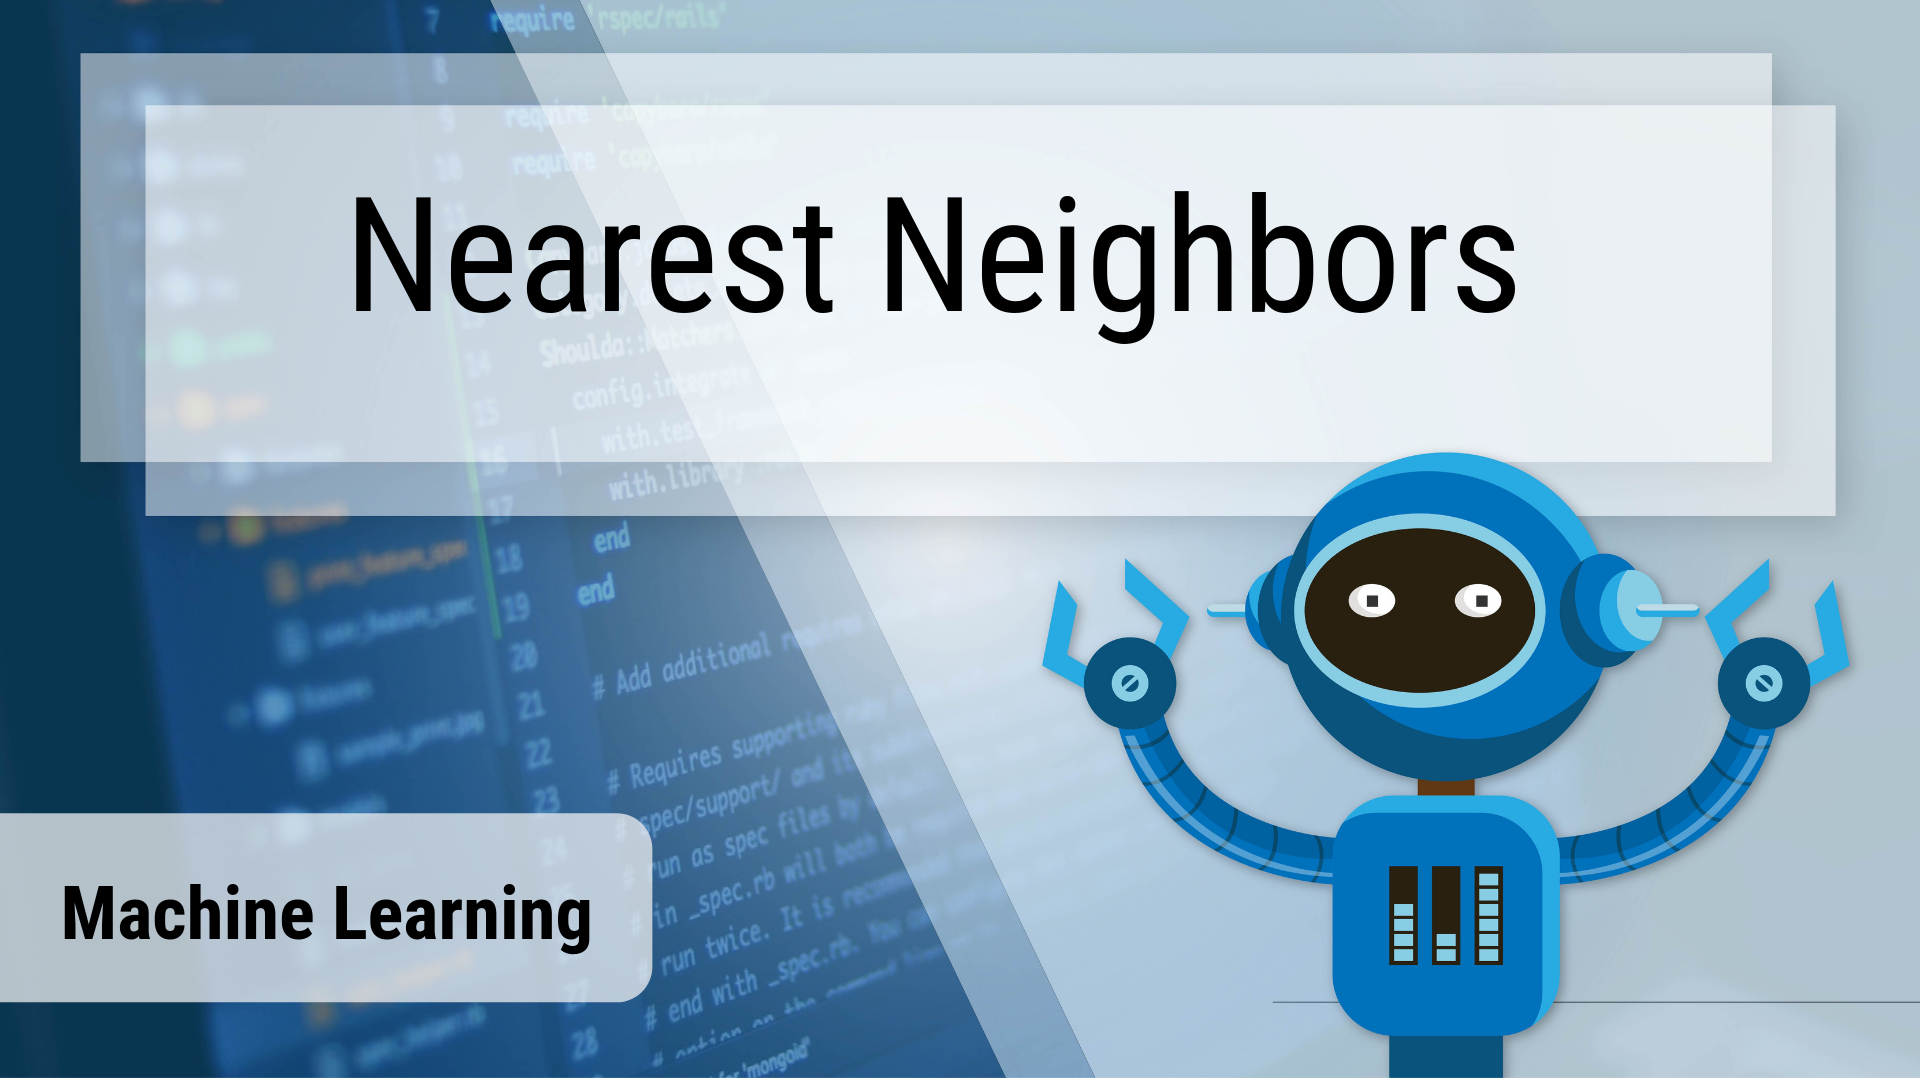 Nearest Neighbors